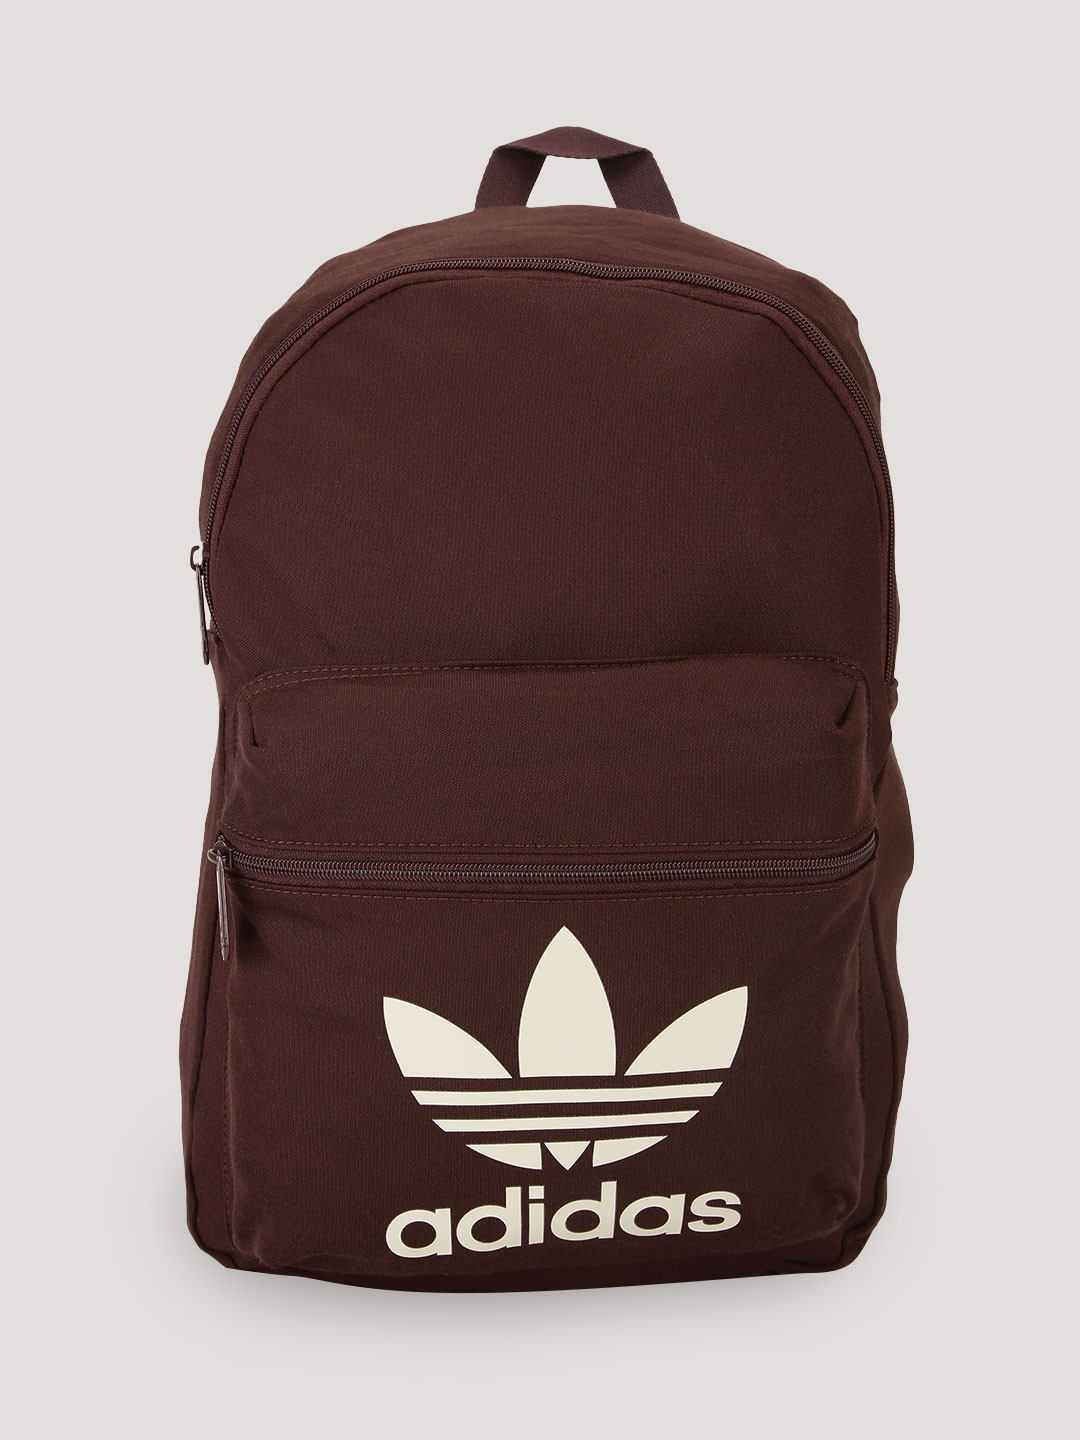 4765eec0d4e Buy adidas backpacks online india   OFF73% Discounted